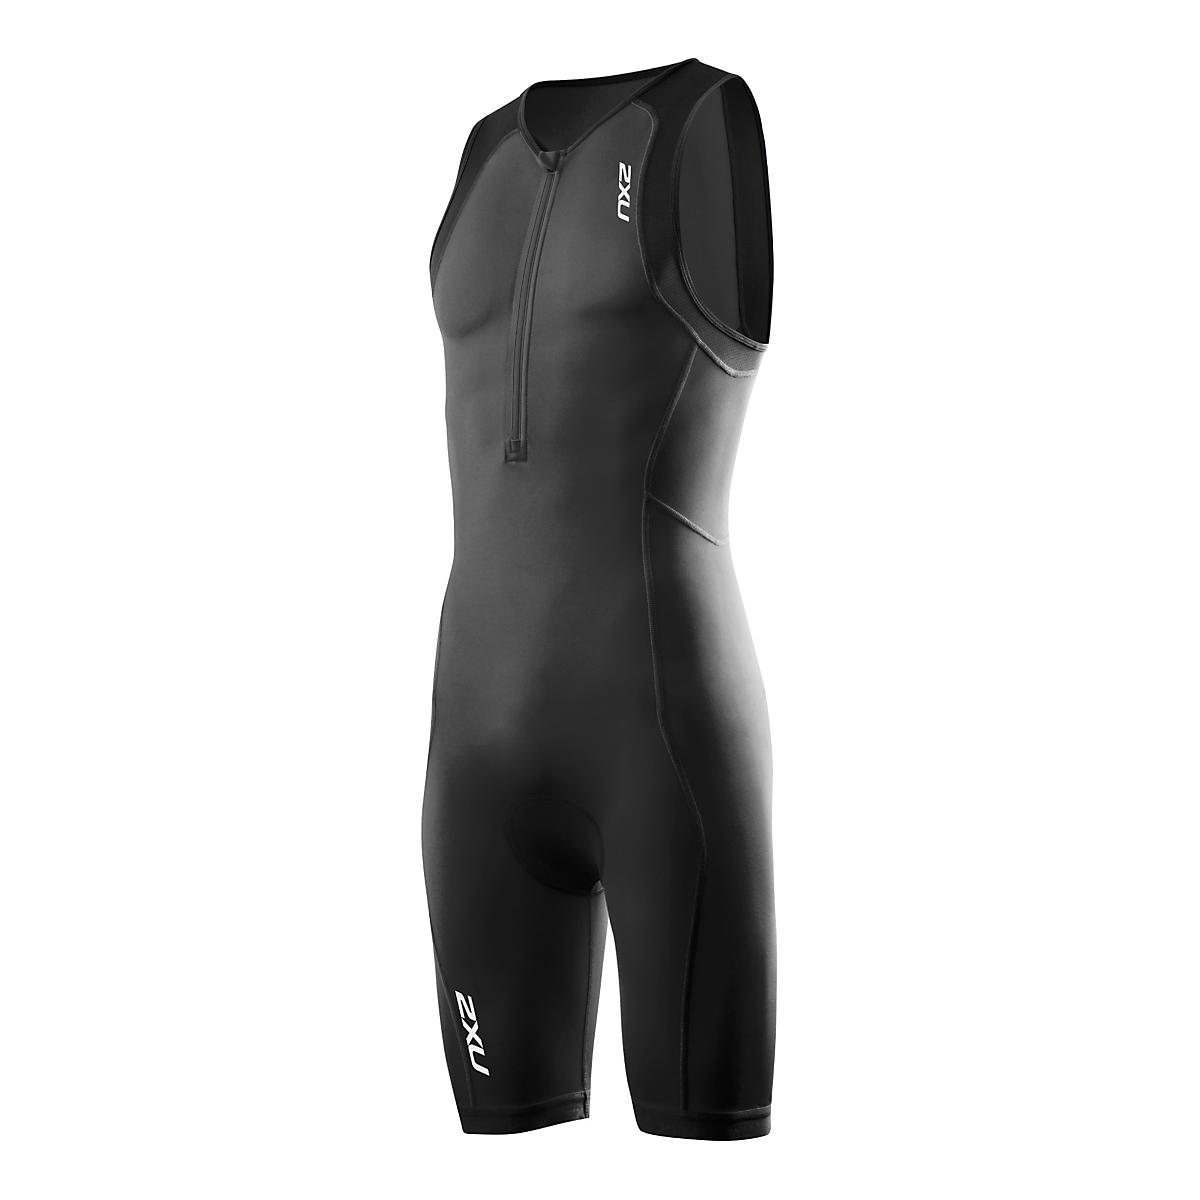 Men's 2XU�G:2 Active Trisuit